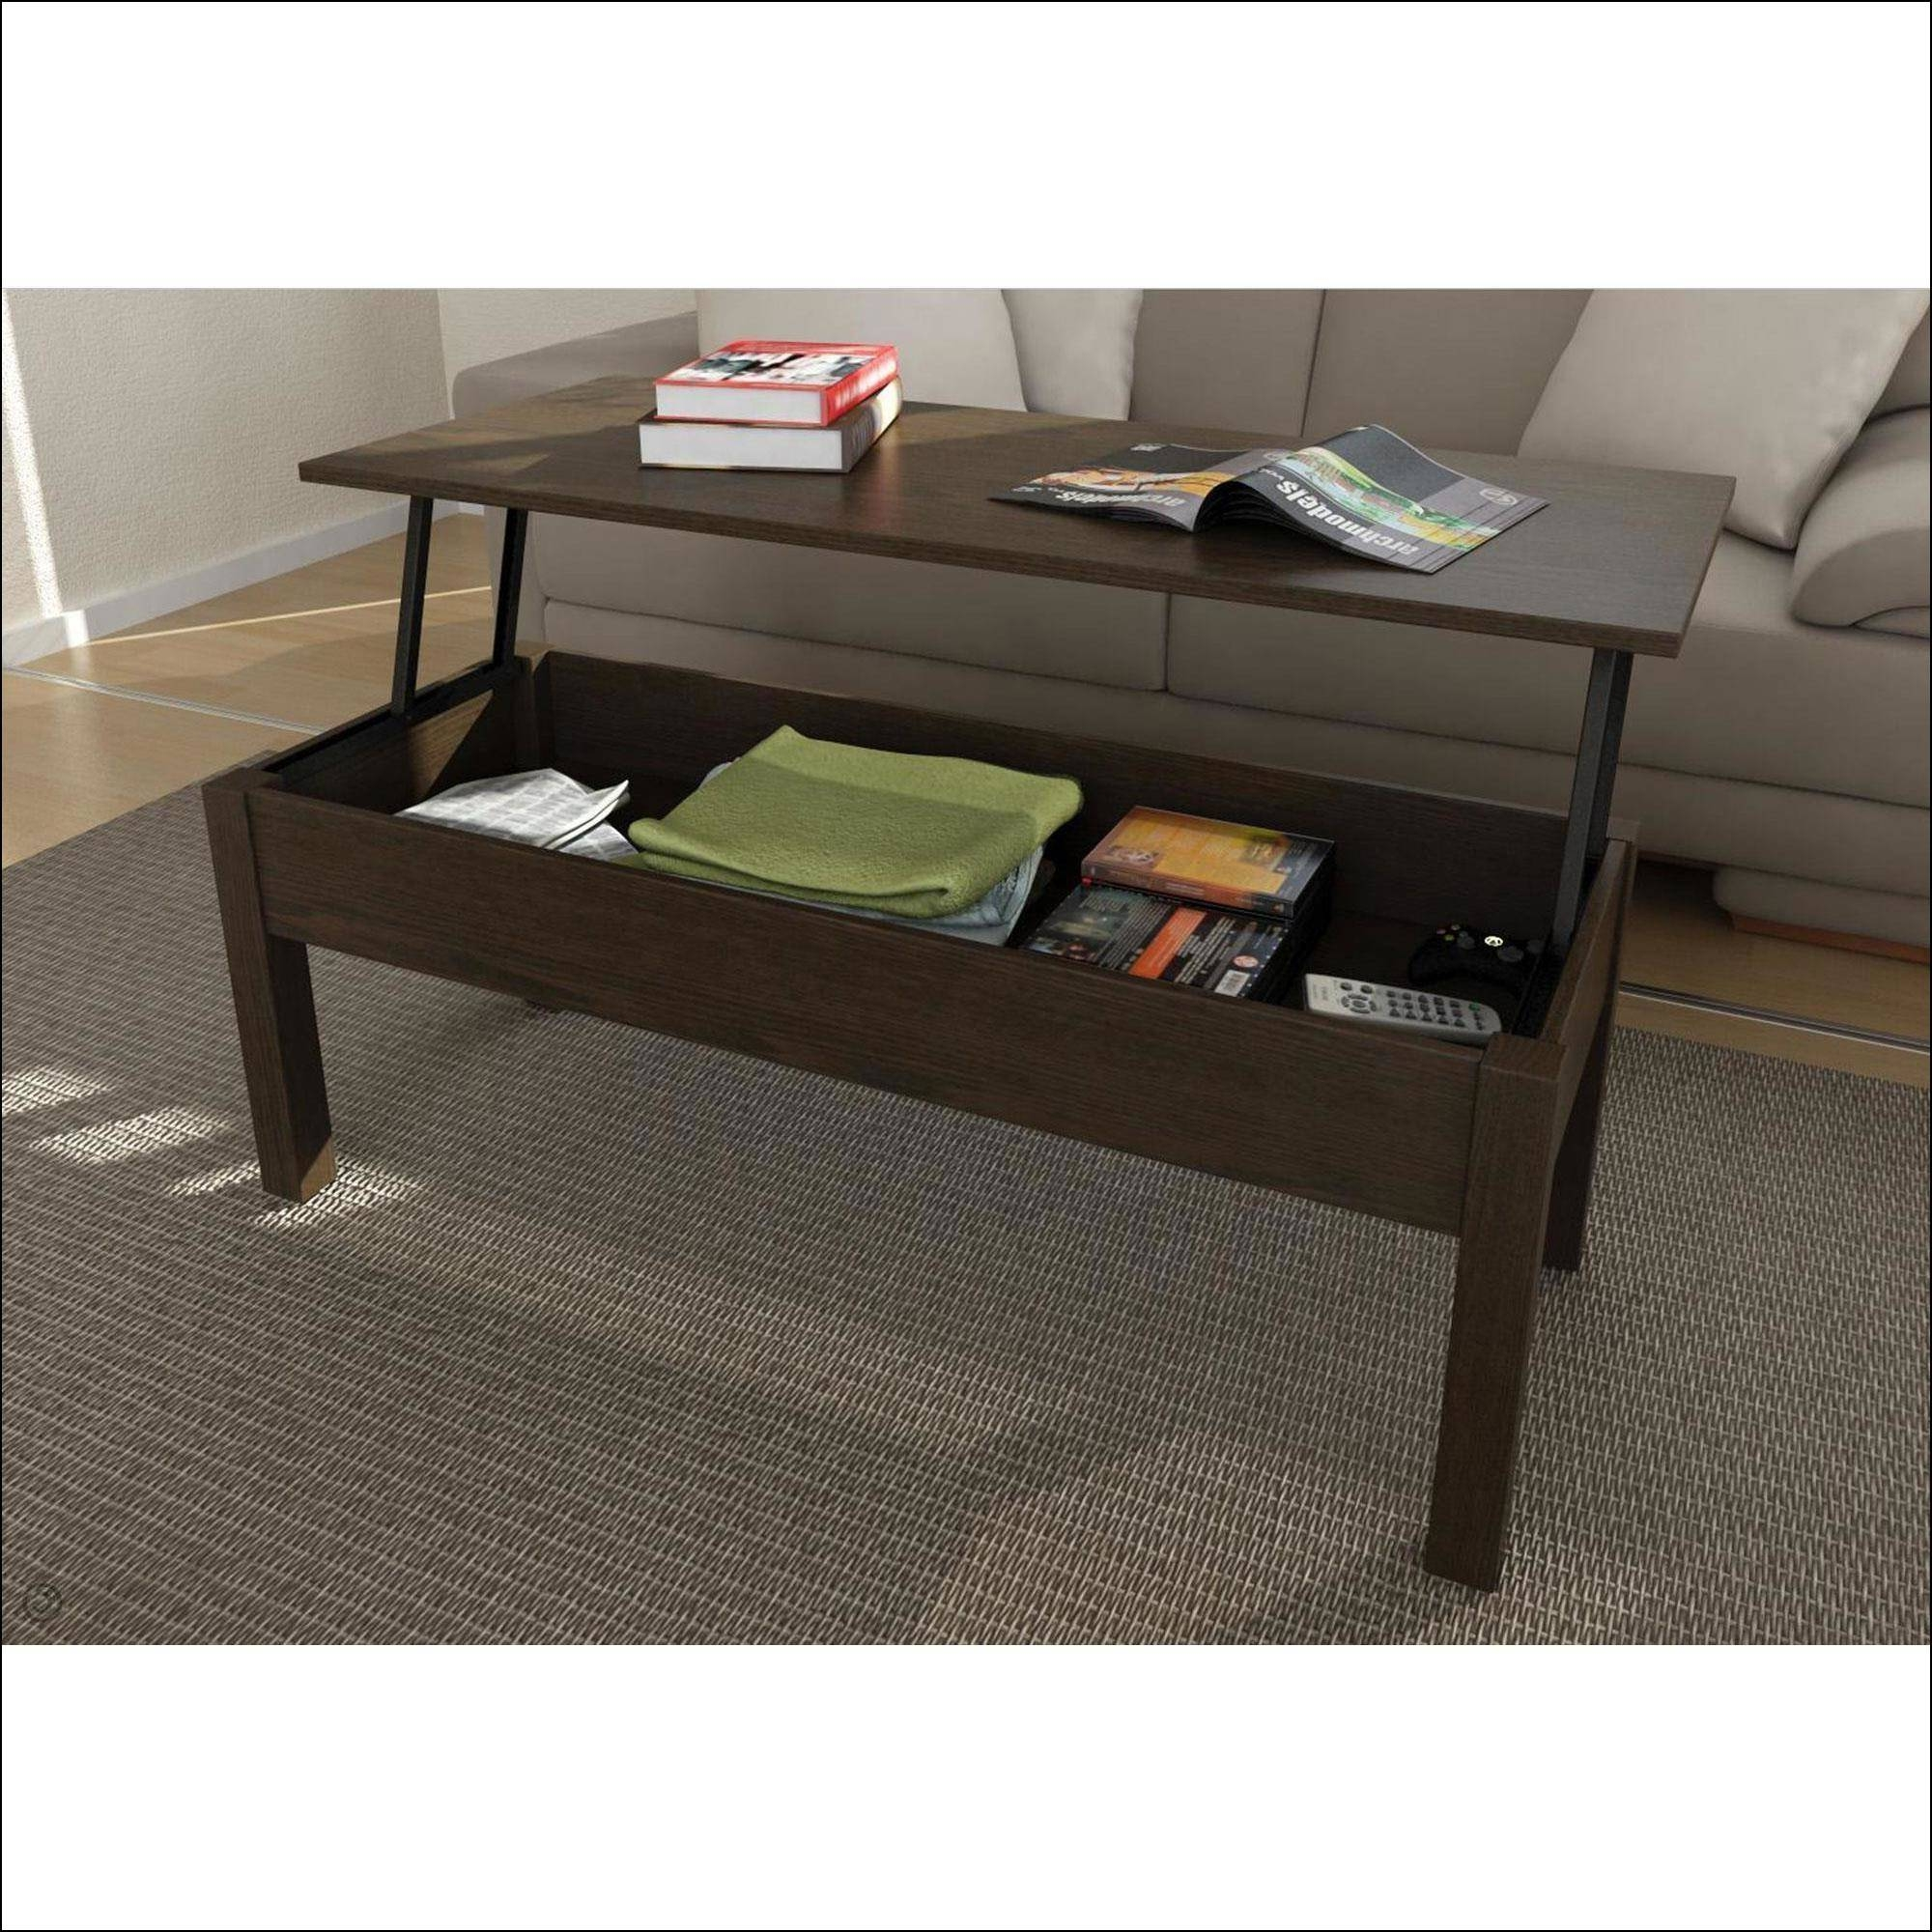 Matching Tv Stand And Coffee Table | Best Room Design with regard to Matching Tv Unit and Coffee Tables (Image 21 of 30)